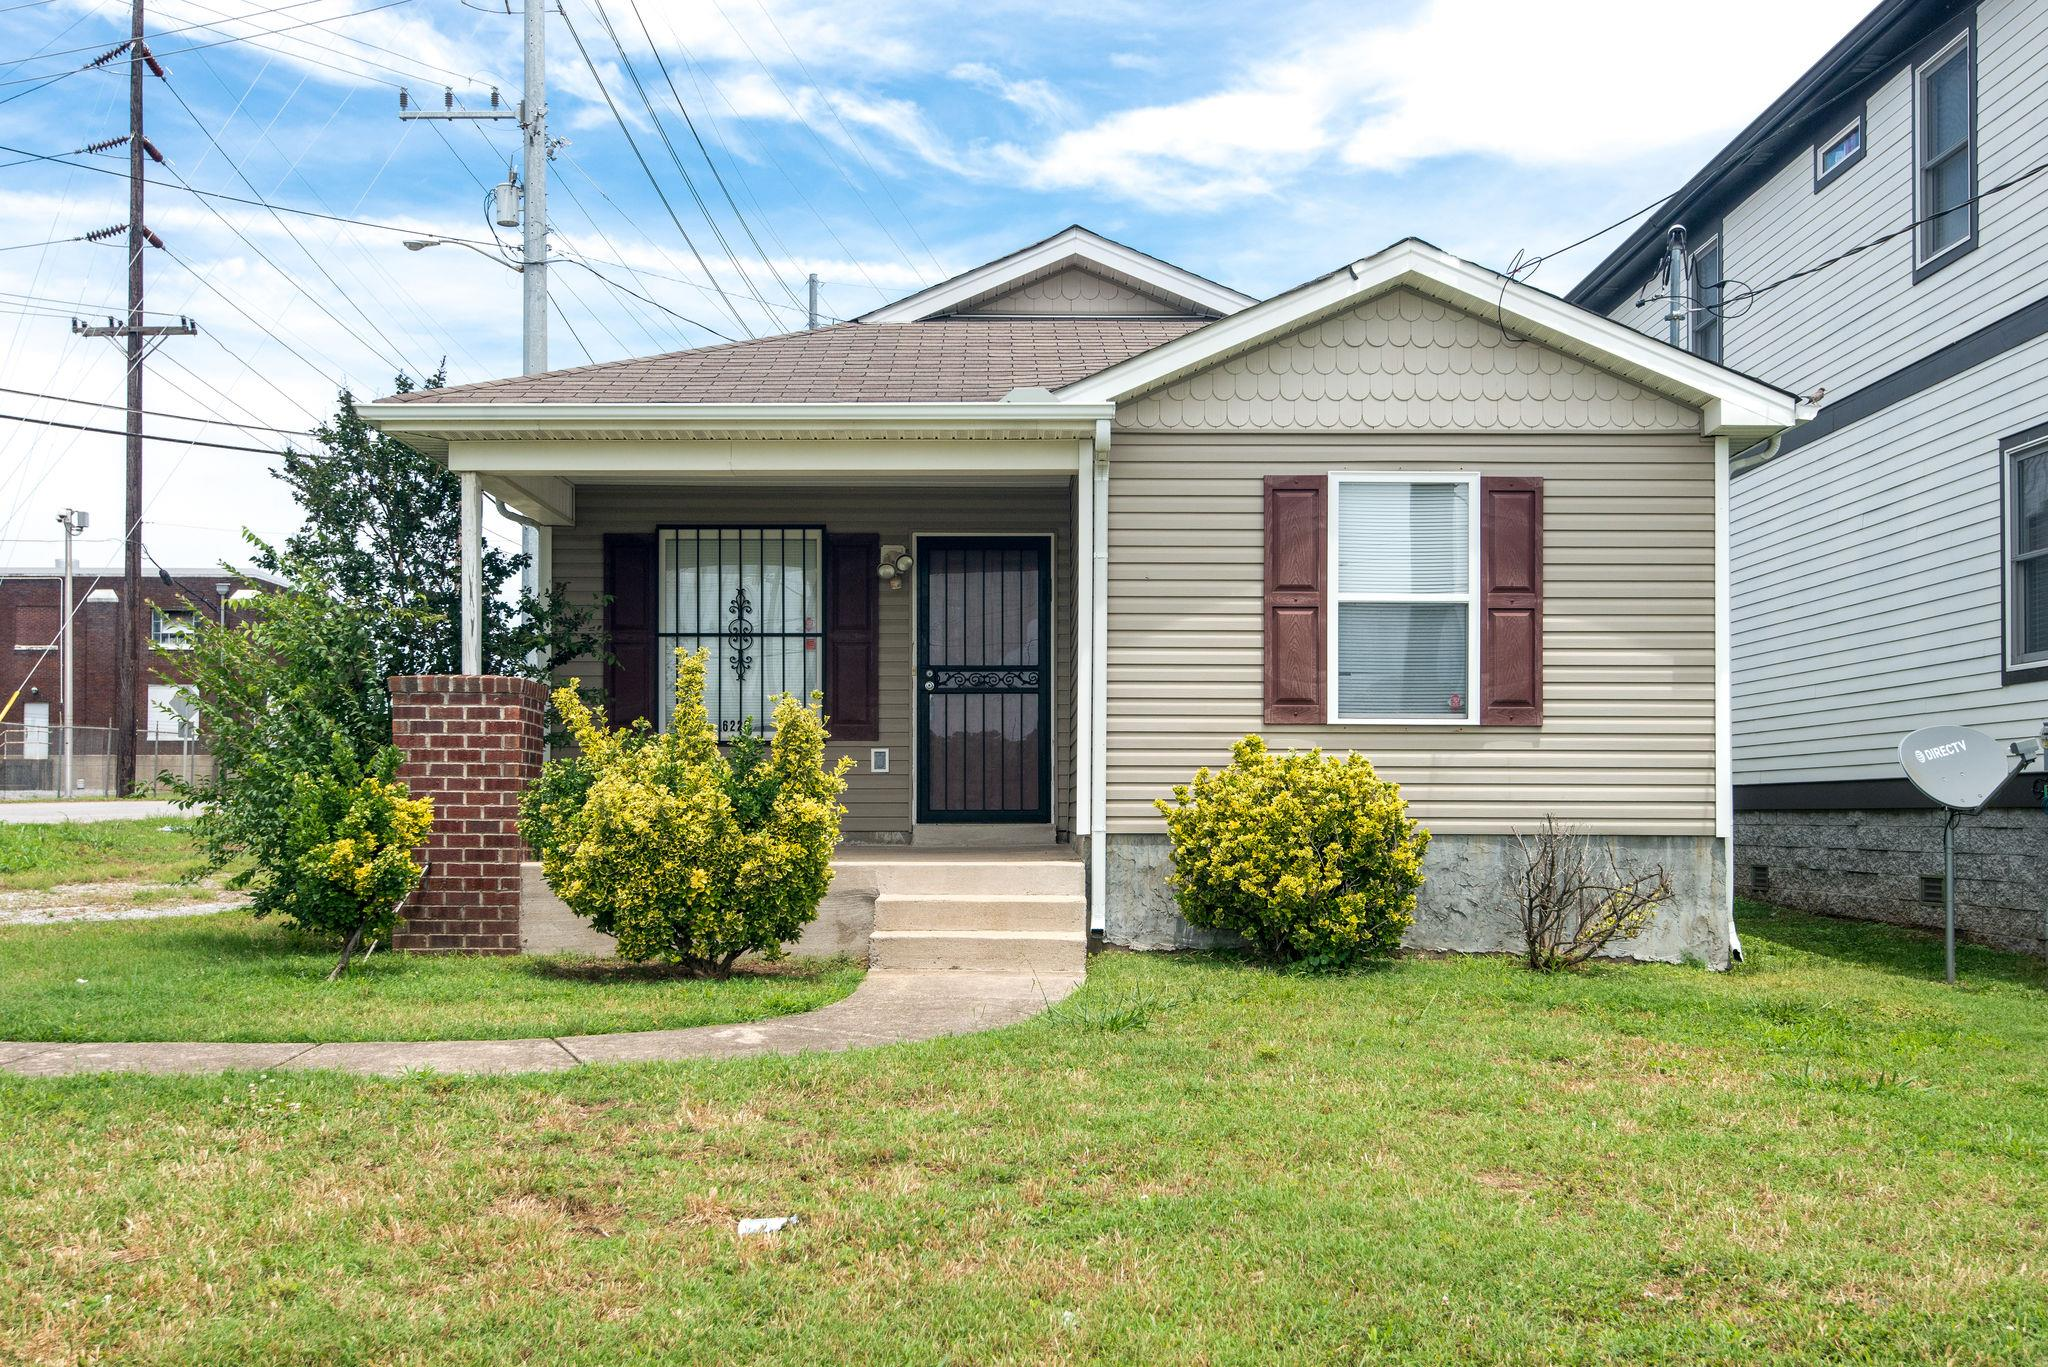 6220 Morrow Rd, Nashville, TN 37209 - Nashville, TN real estate listing